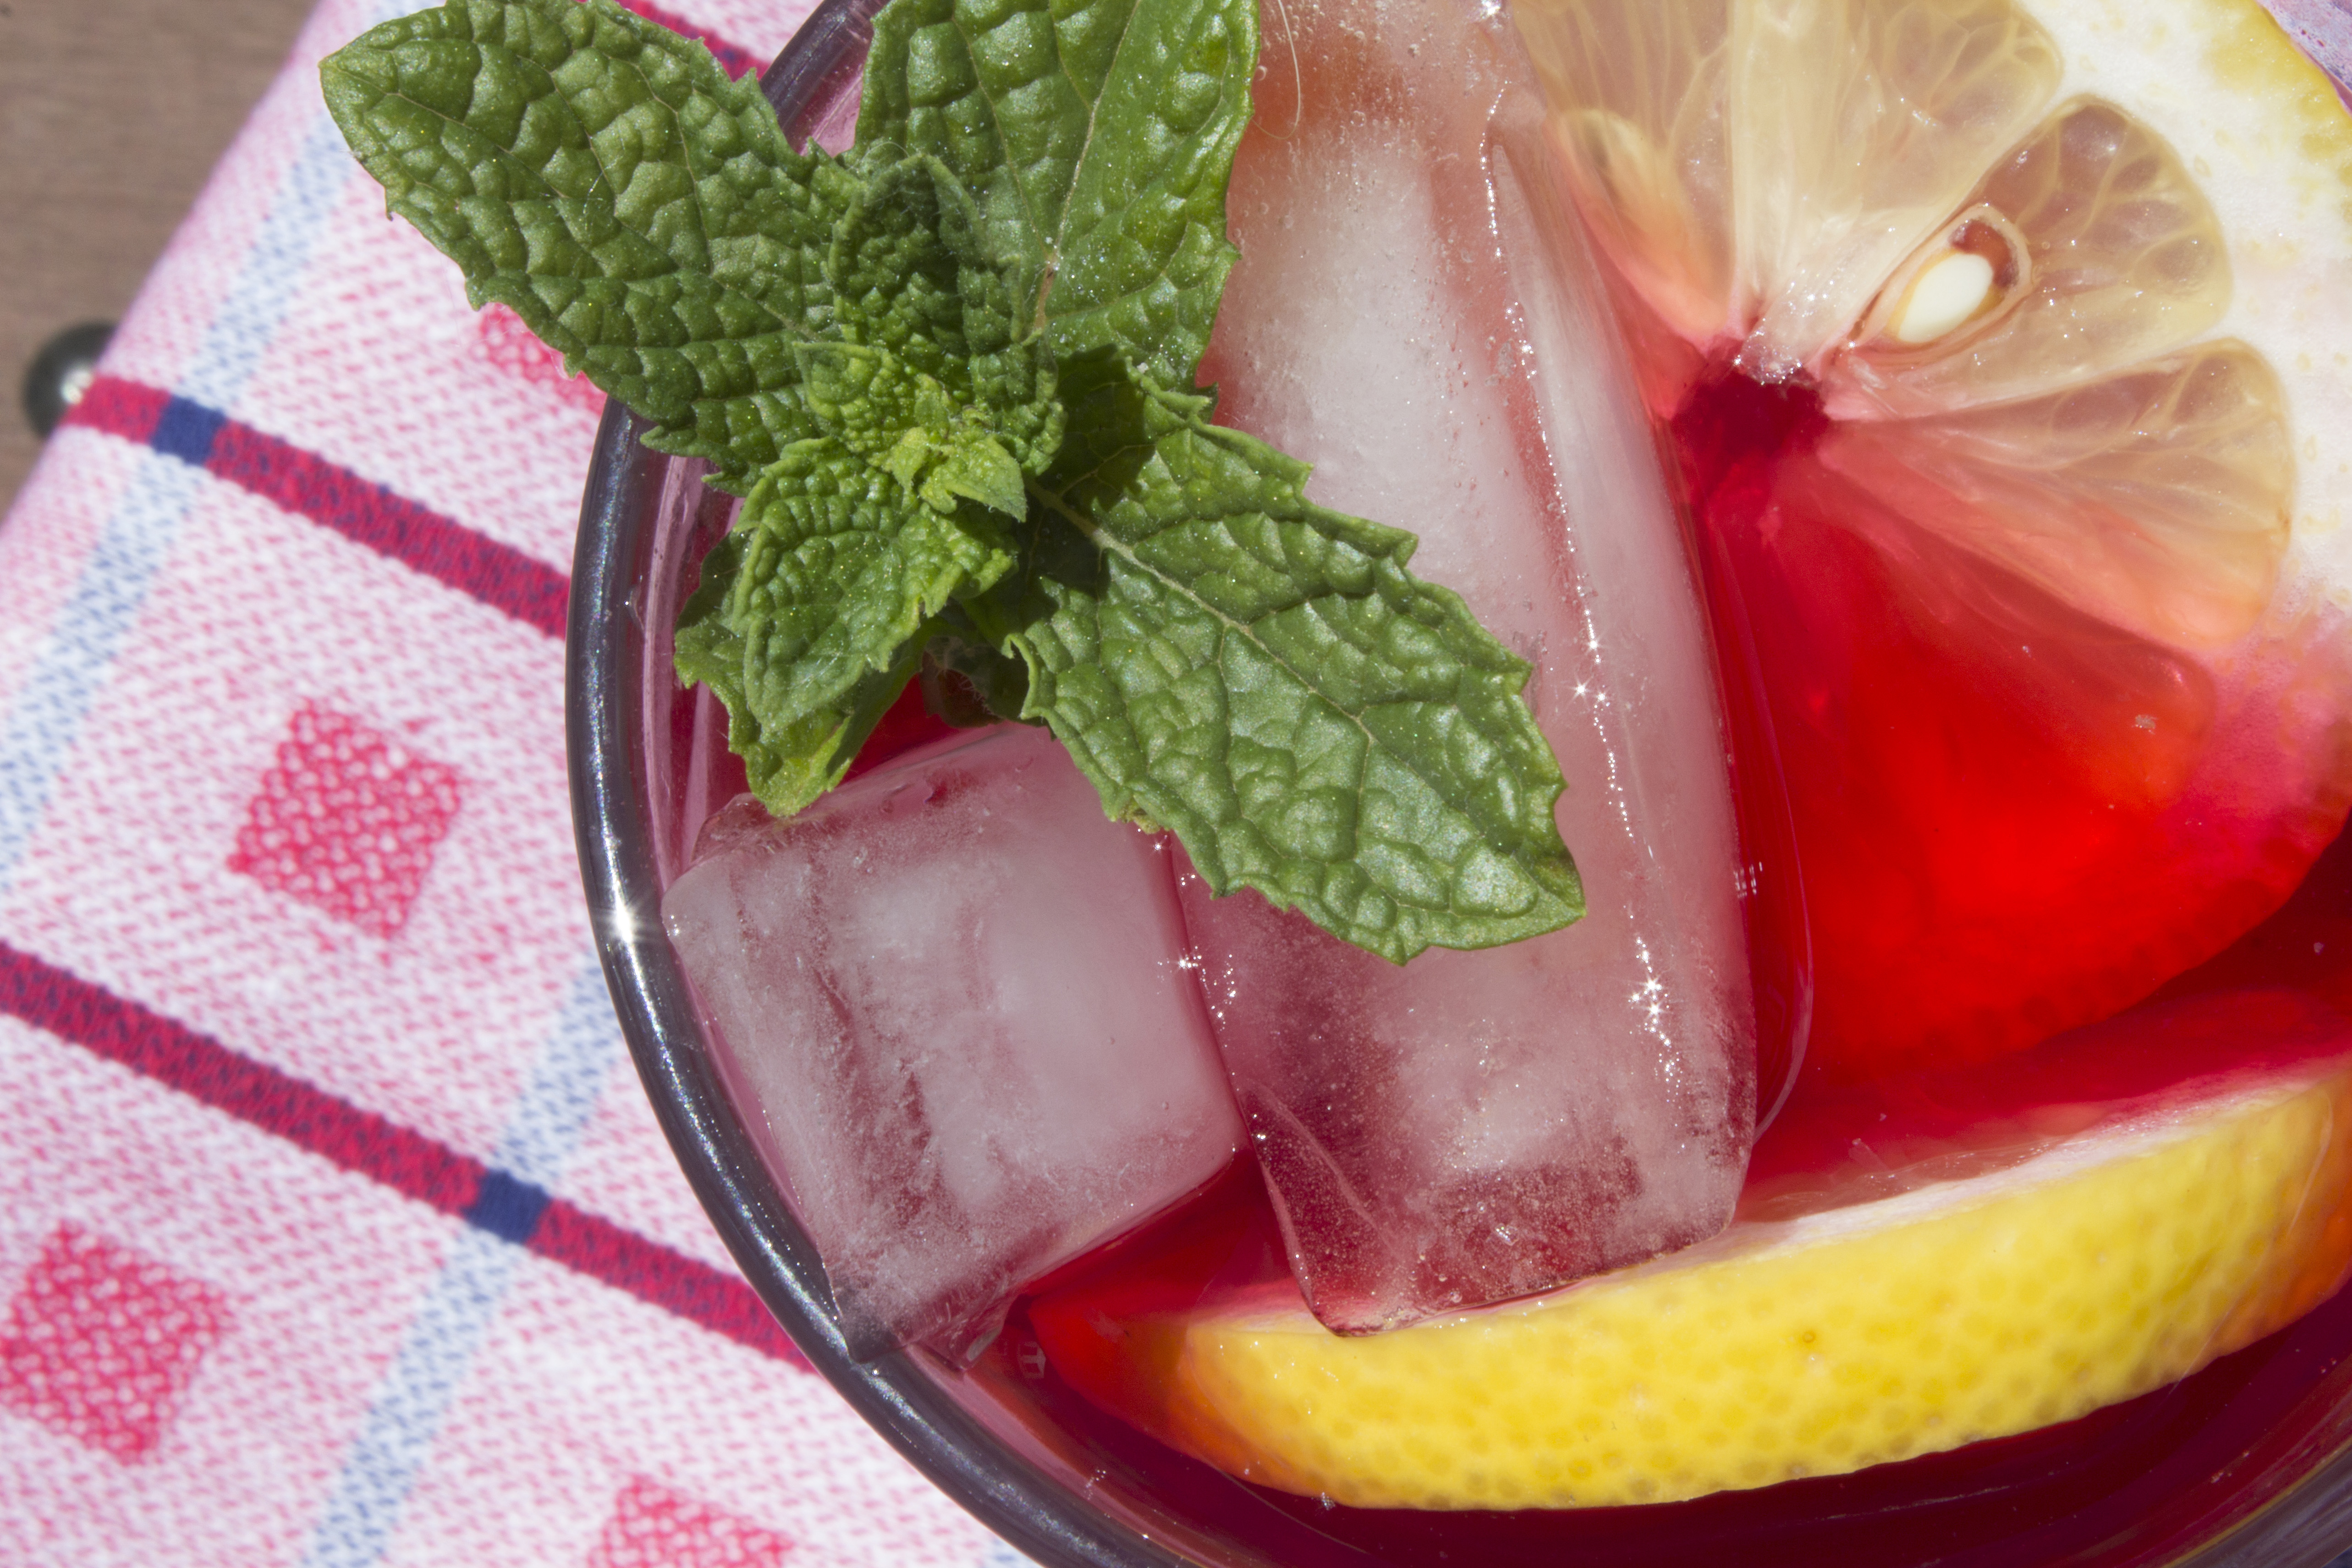 Hibiscus sun tea is so tart and refreshing. Sun tea takes a minute of planning and moments to make. Let the sun do the work for you!